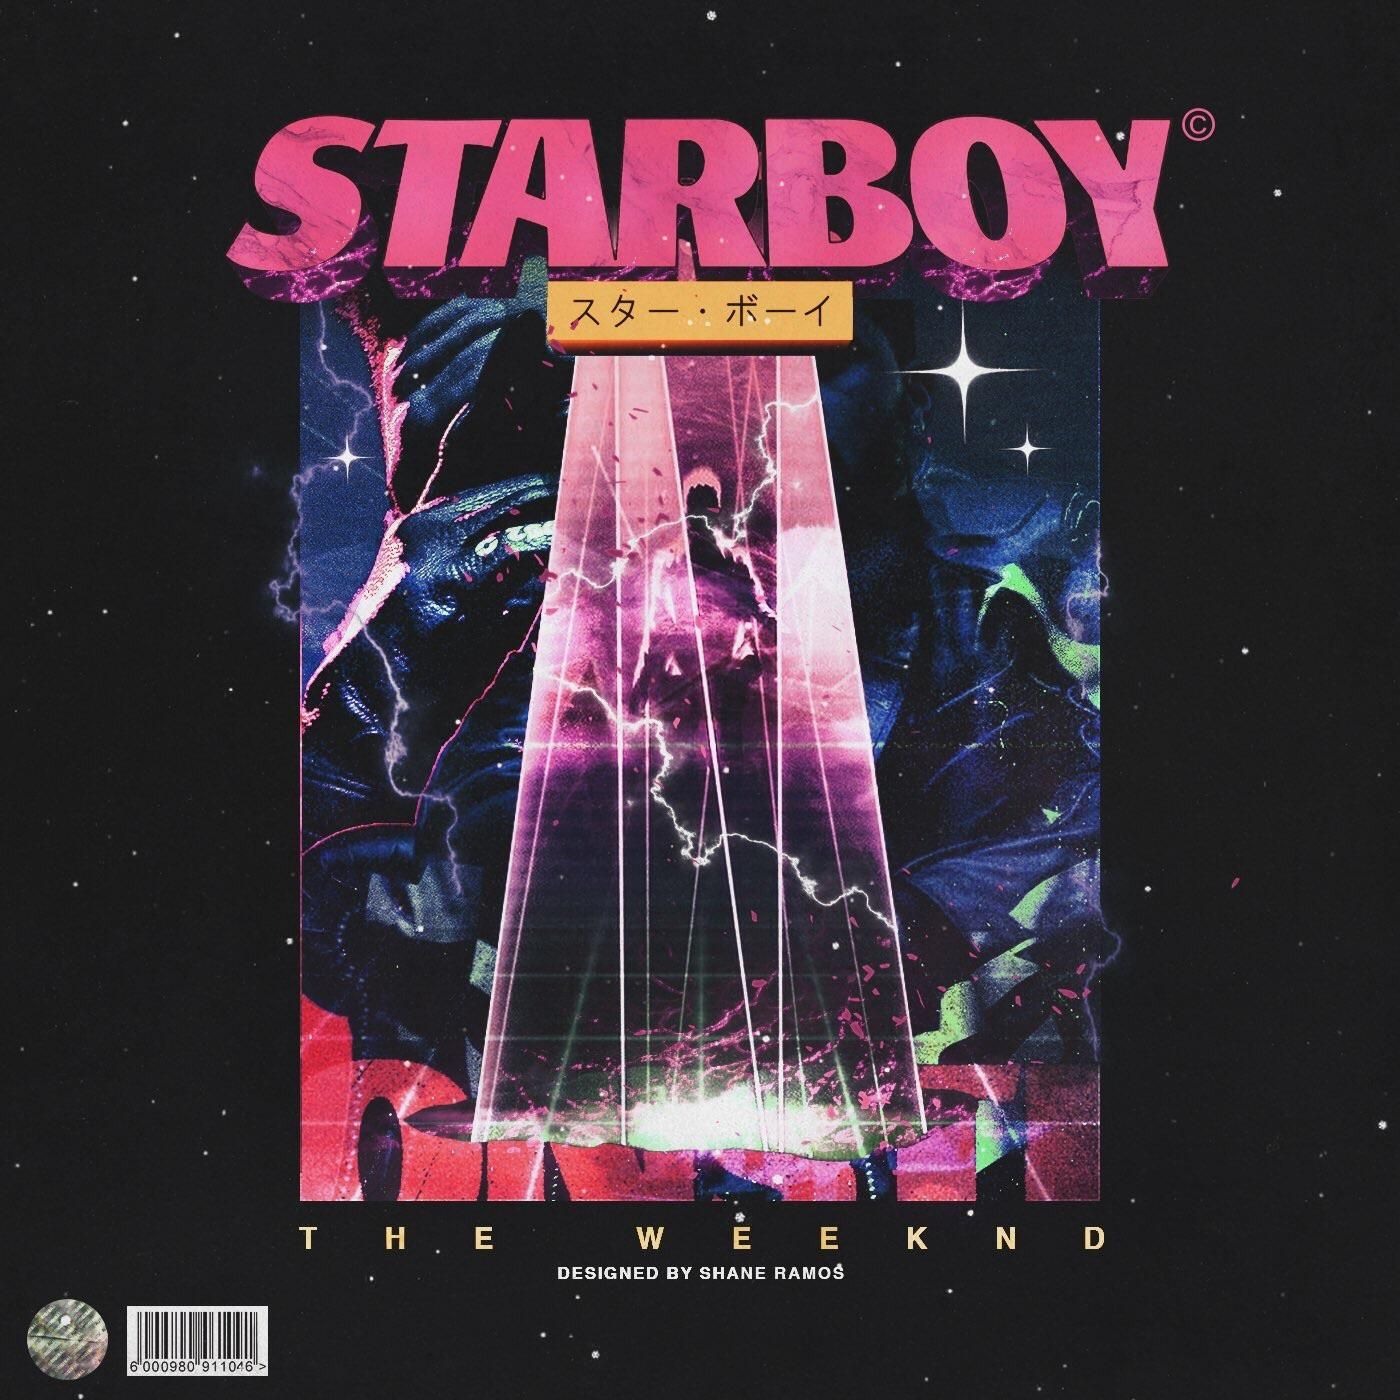 The Weeknd Starboy FanArt by Shane Ramos Cover art